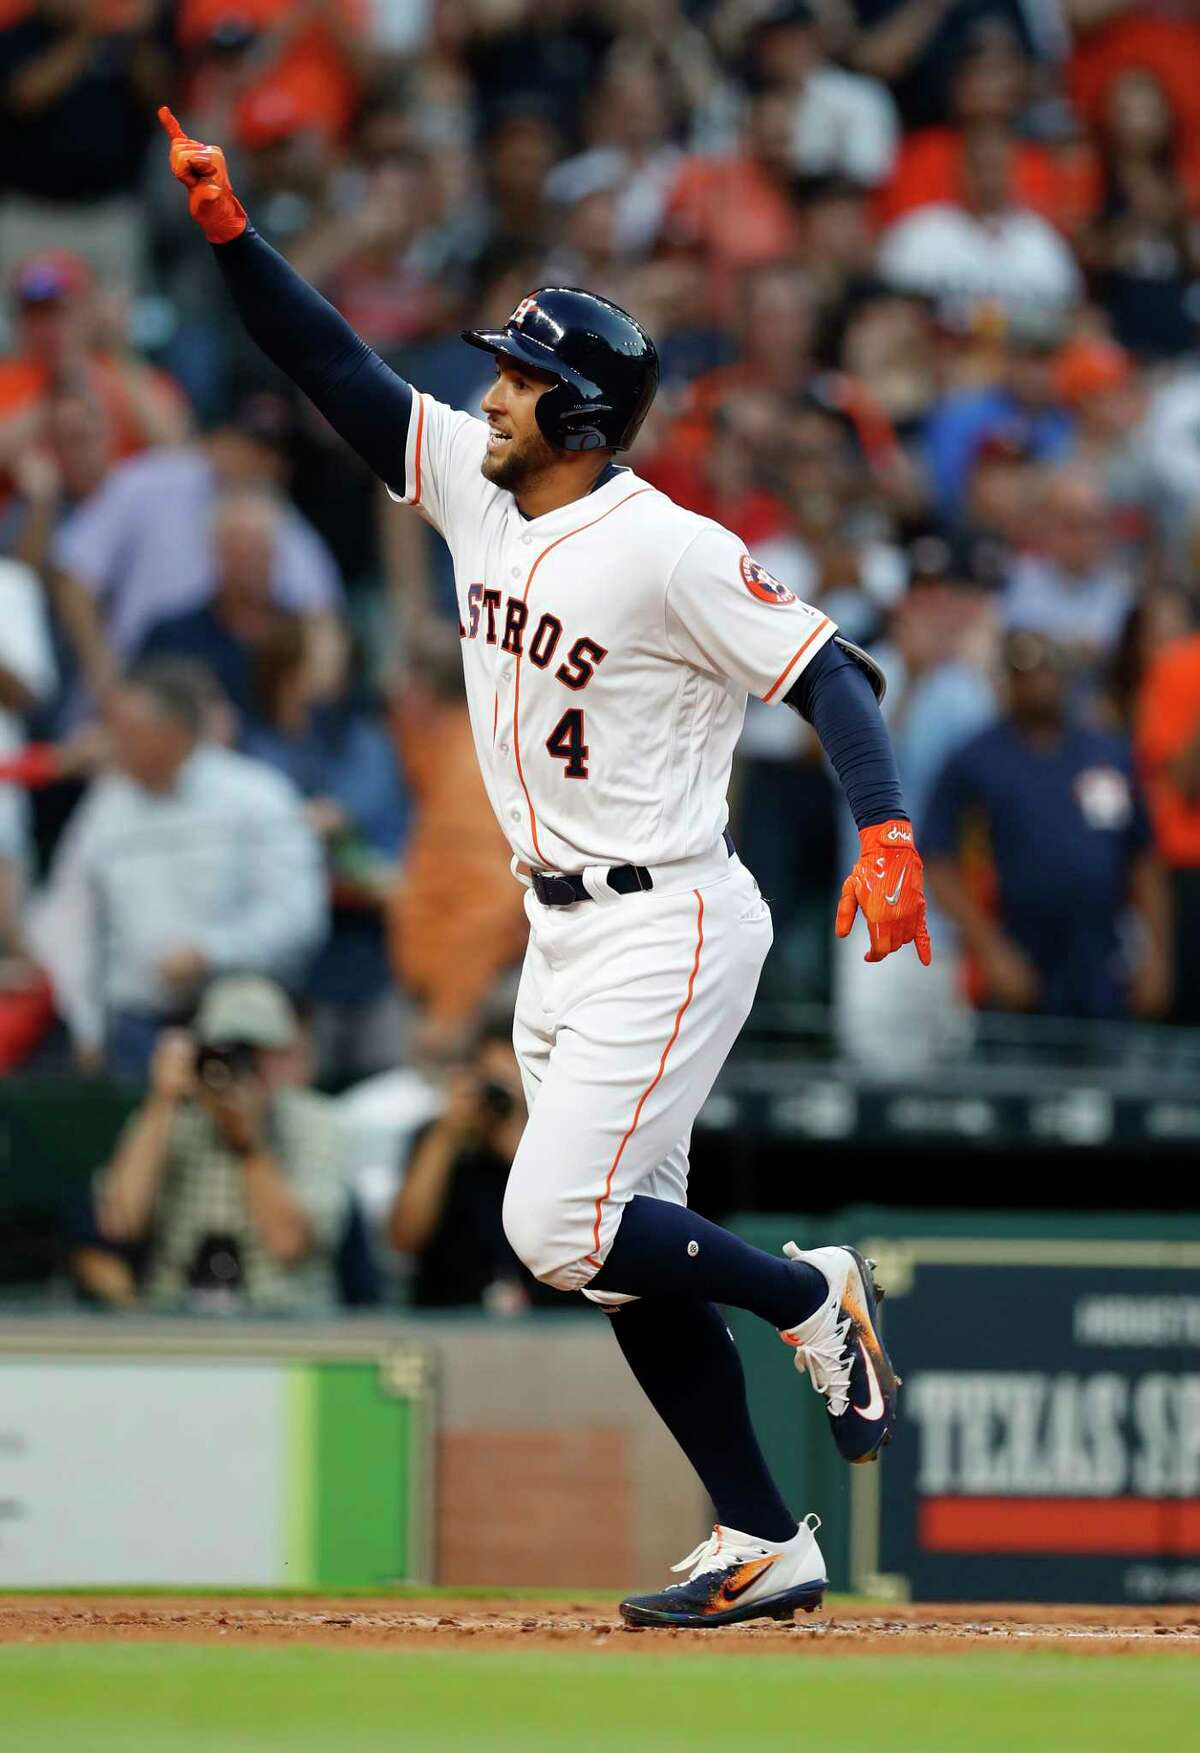 Houston Astros right fielder George Springer (4) celebrates his home run in the first inning of the Houston Astros at Minute Maid Park, Friday, March 31, 2017, in Houston. ( Karen Warren / Houston Chronicle )